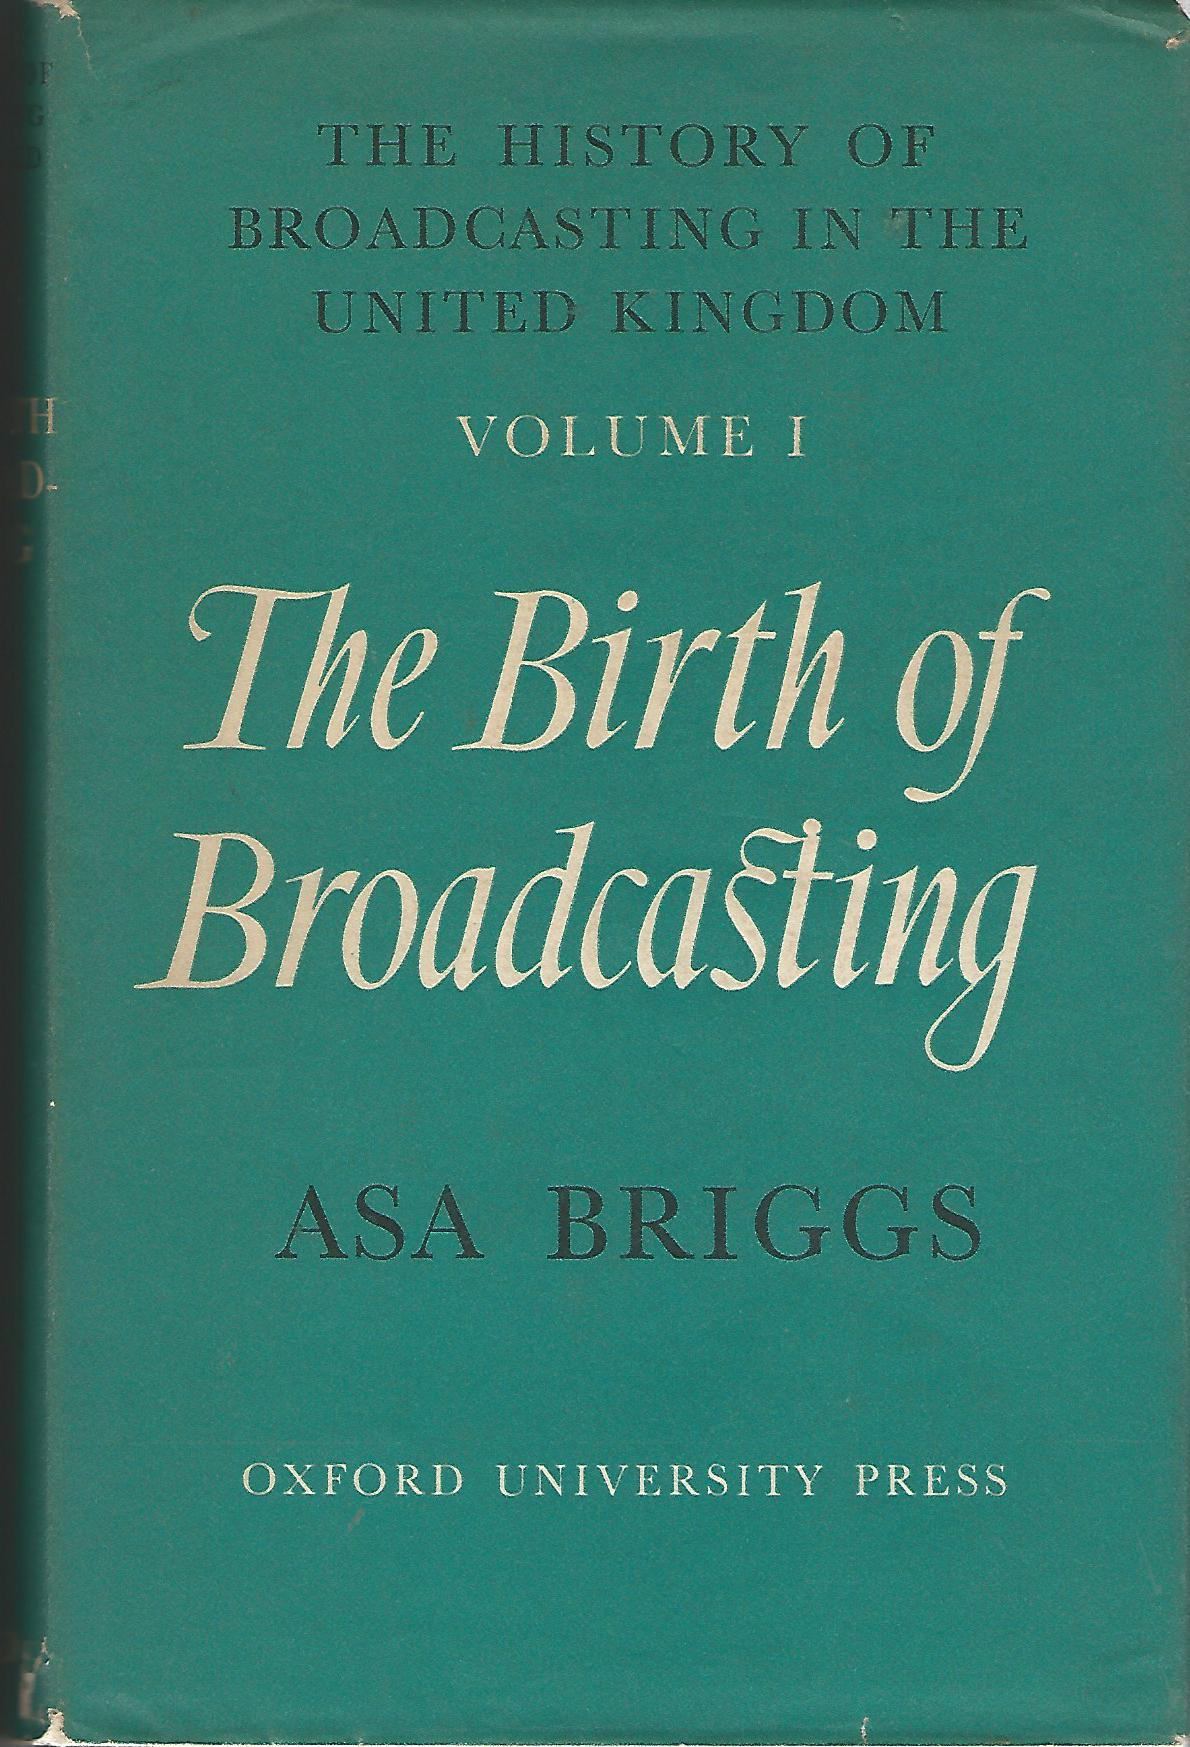 Image for The History of Broadcasting in the United Kingdom Volume 1: The Birth of Broadcasting.